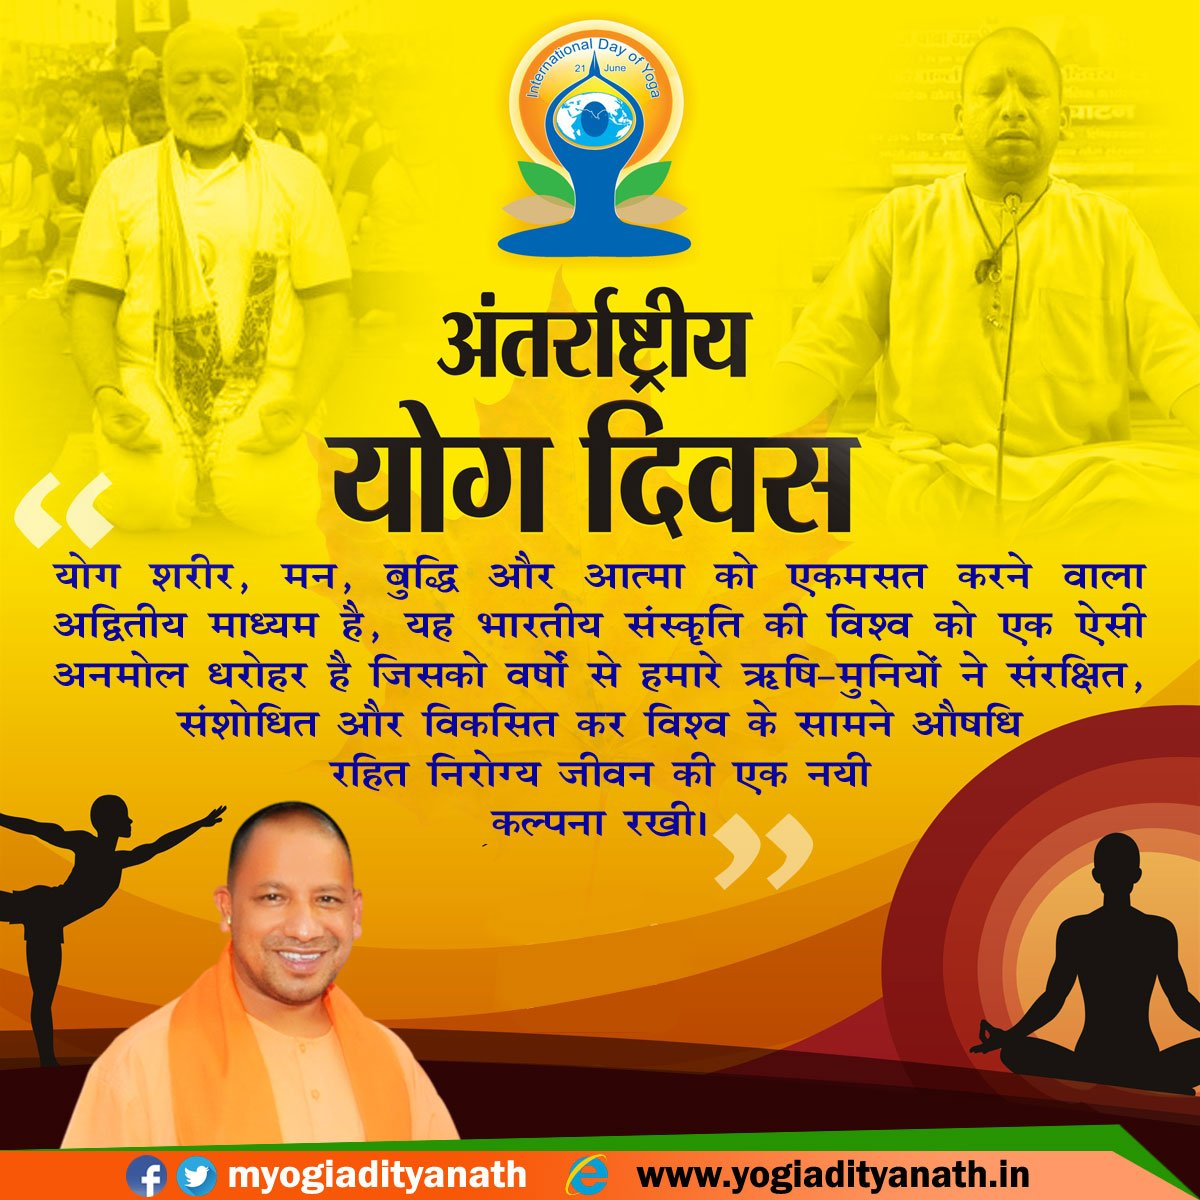 Yogi Adityanath's photo on #InternationalYogaDay2018